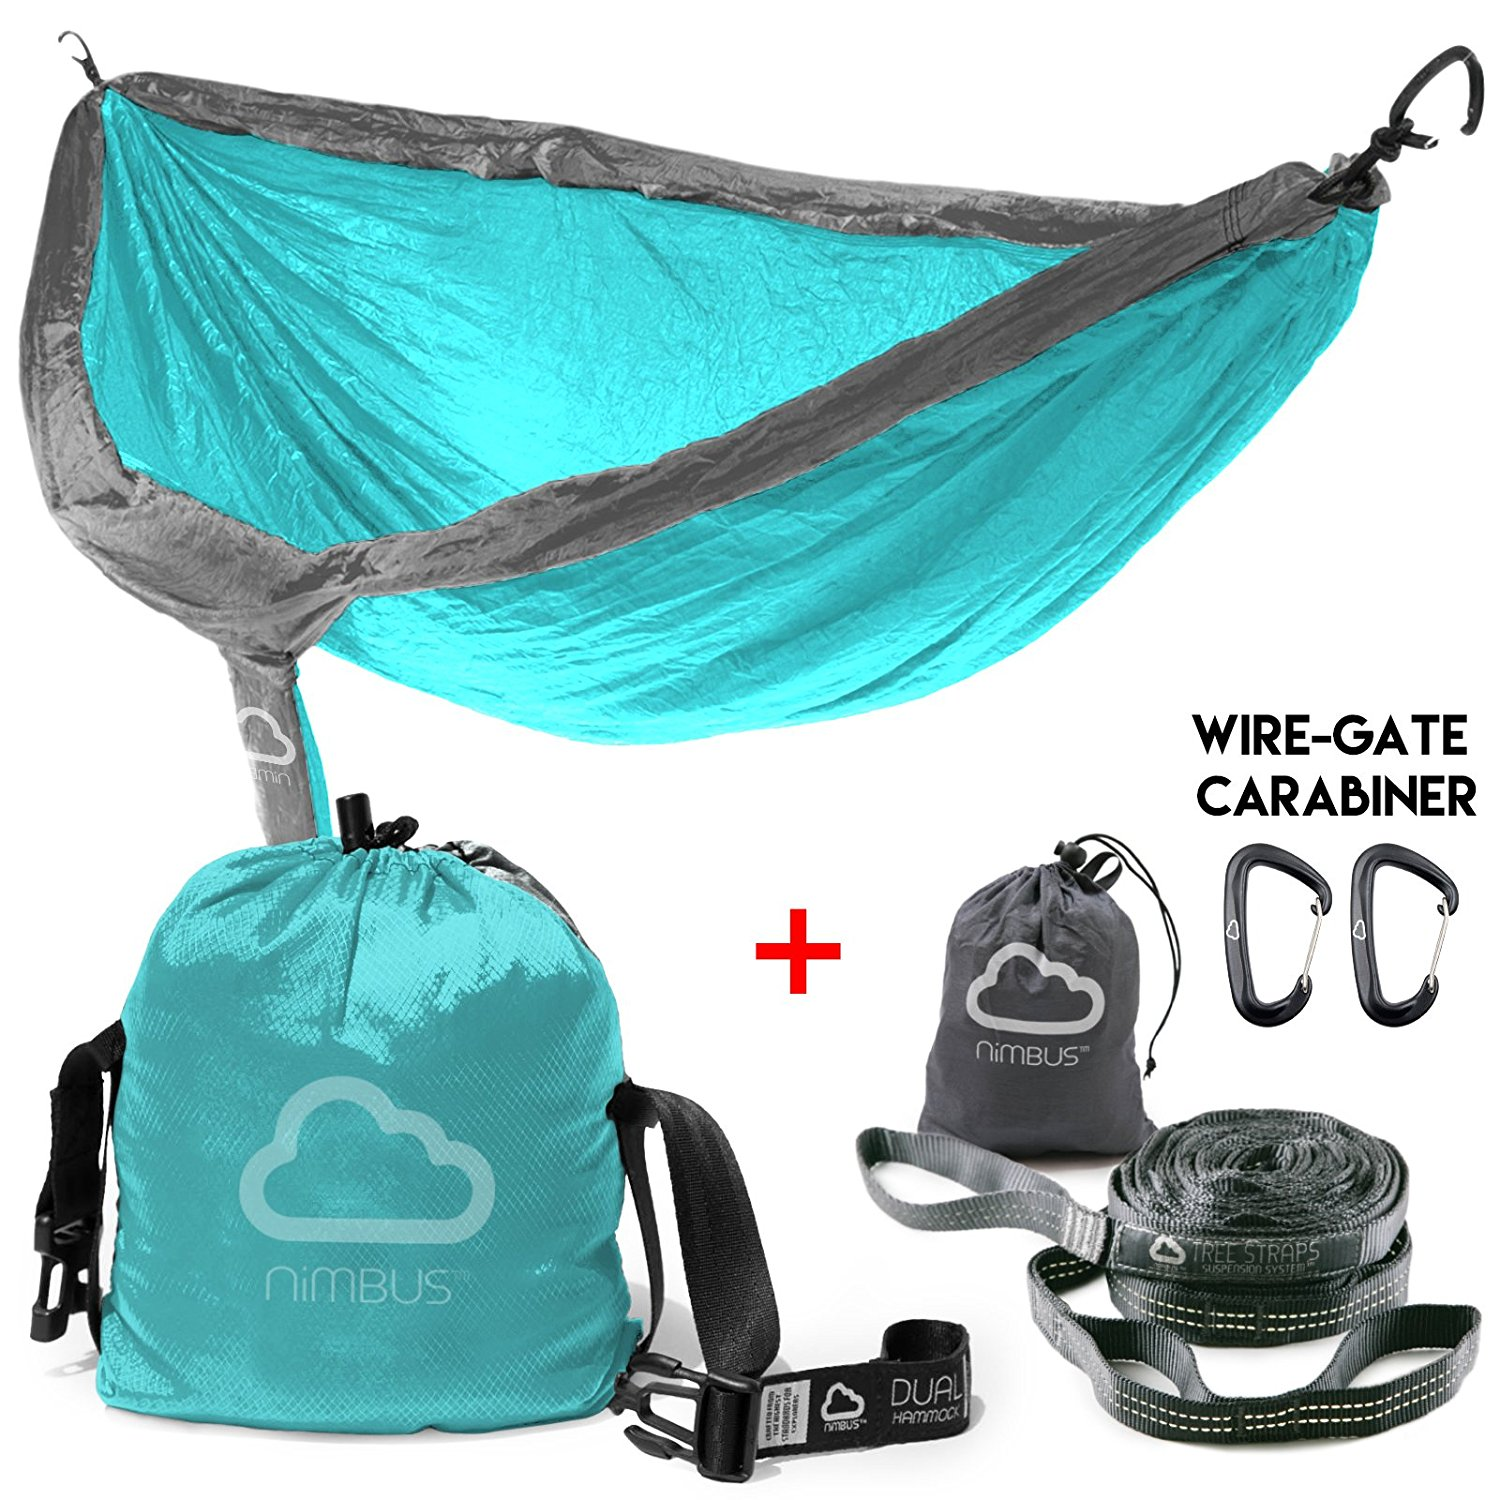 CYBER MONDAY SALE!!! Ends Today! - Double Outdoor Camping Nylon Hammock with Suspension Kit & Premium Carabiner [Complete Hammock Set] - Designed in USA | Top Rated | Built to Last | by Nimbus Hammock